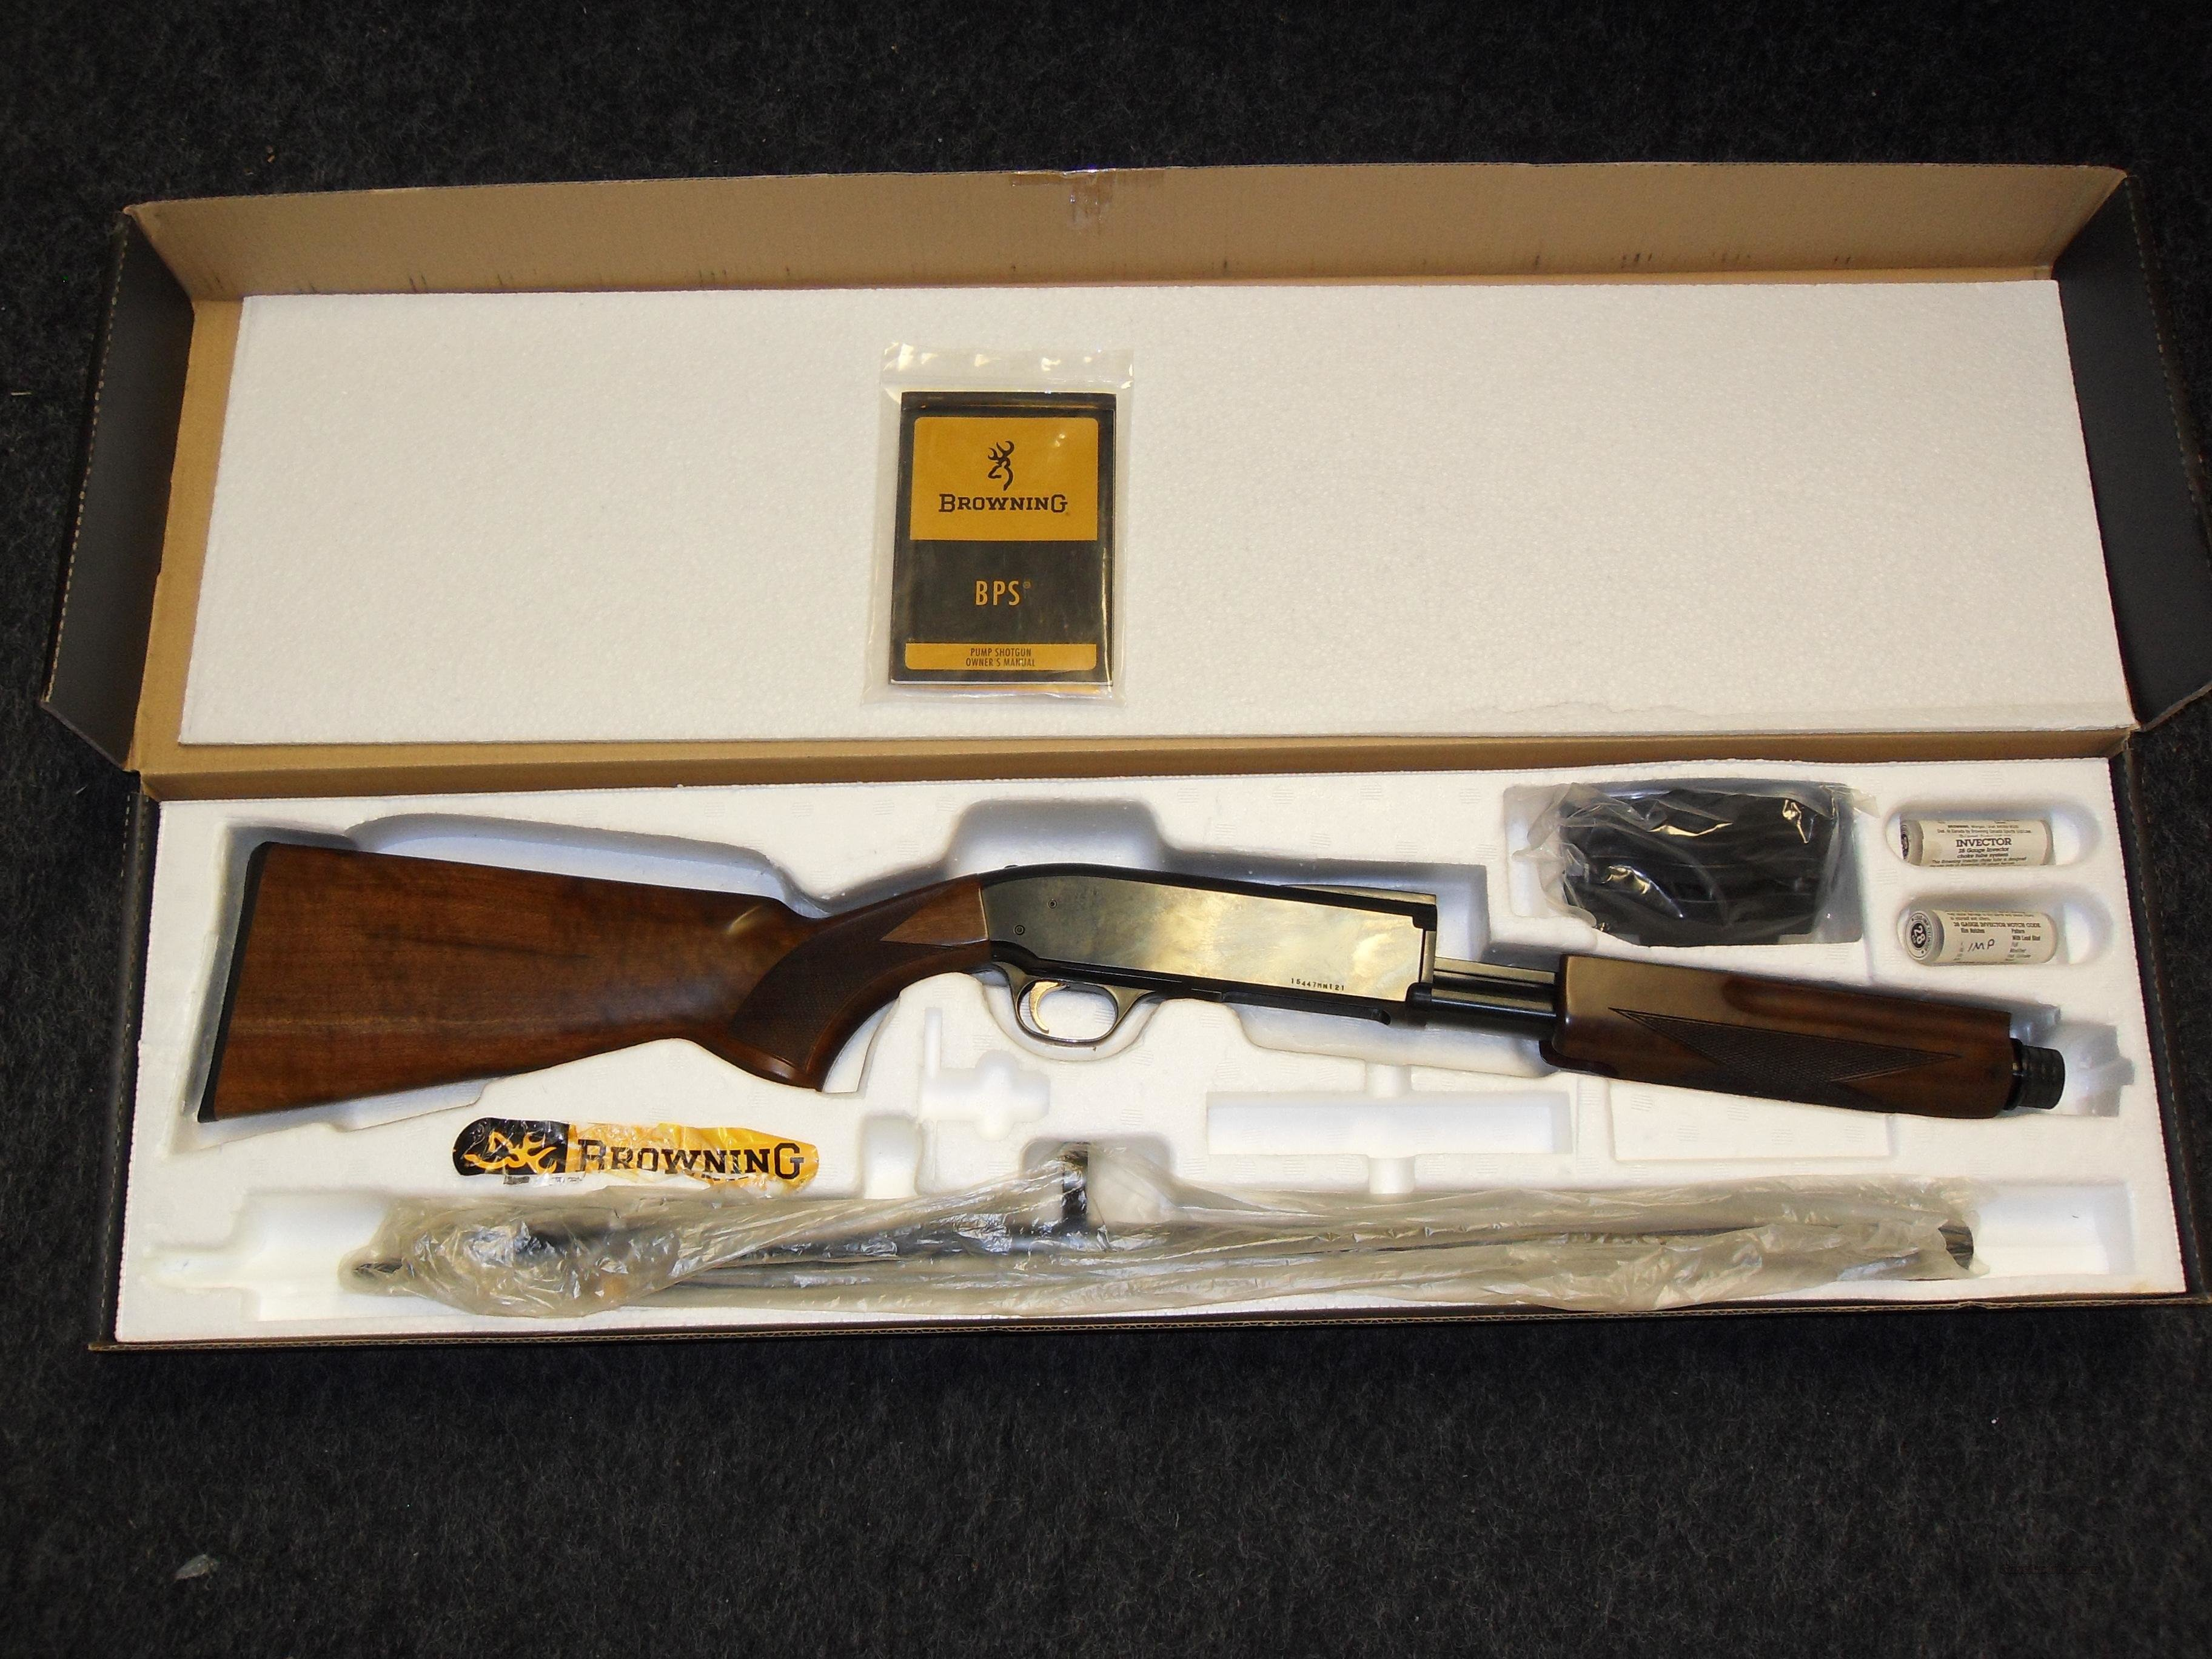 Browning BPS 28 Ga  Guns > Shotguns > Browning Shotguns > Pump Action > Hunting